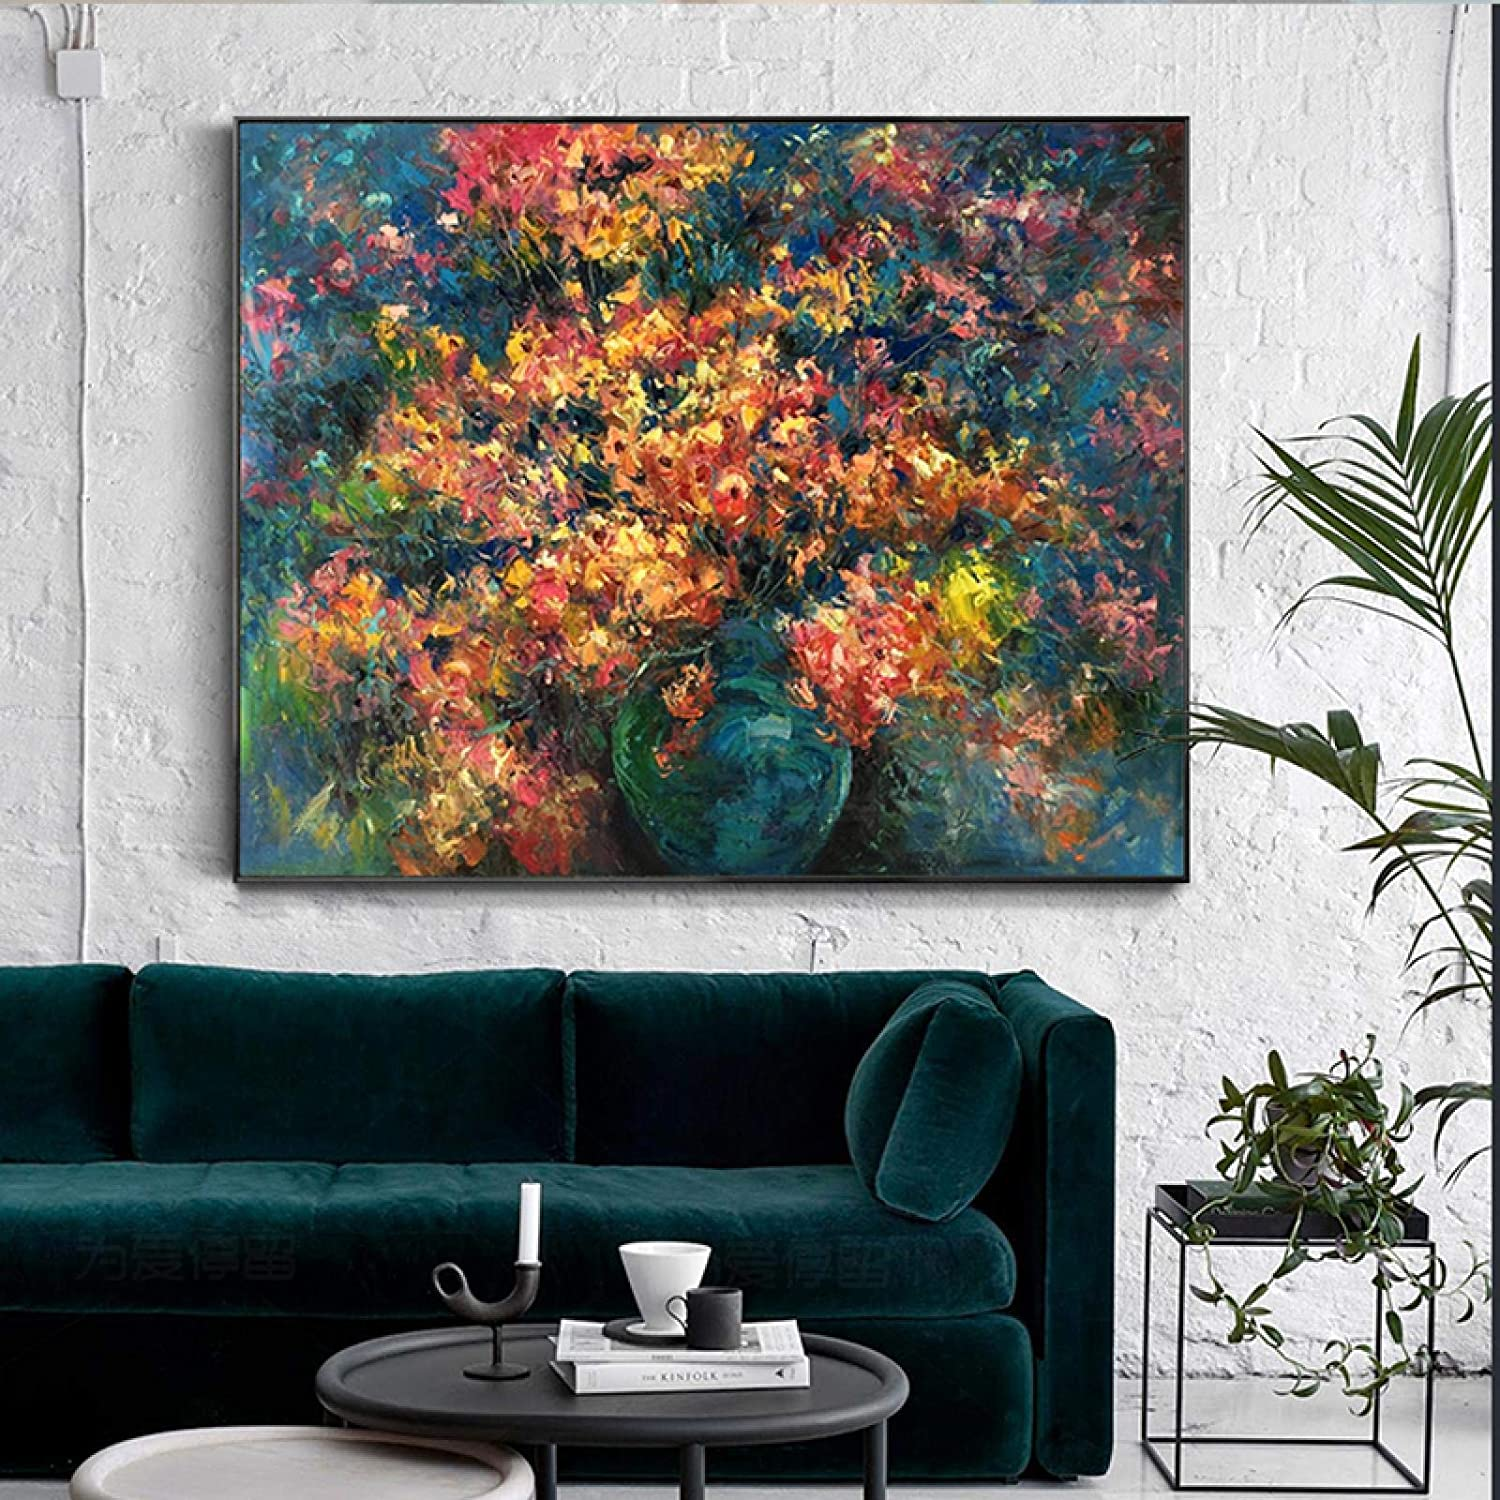 Abstract Flower Art On Canvas Wall Many popular brands Decoration Picture R For Long Beach Mall Live